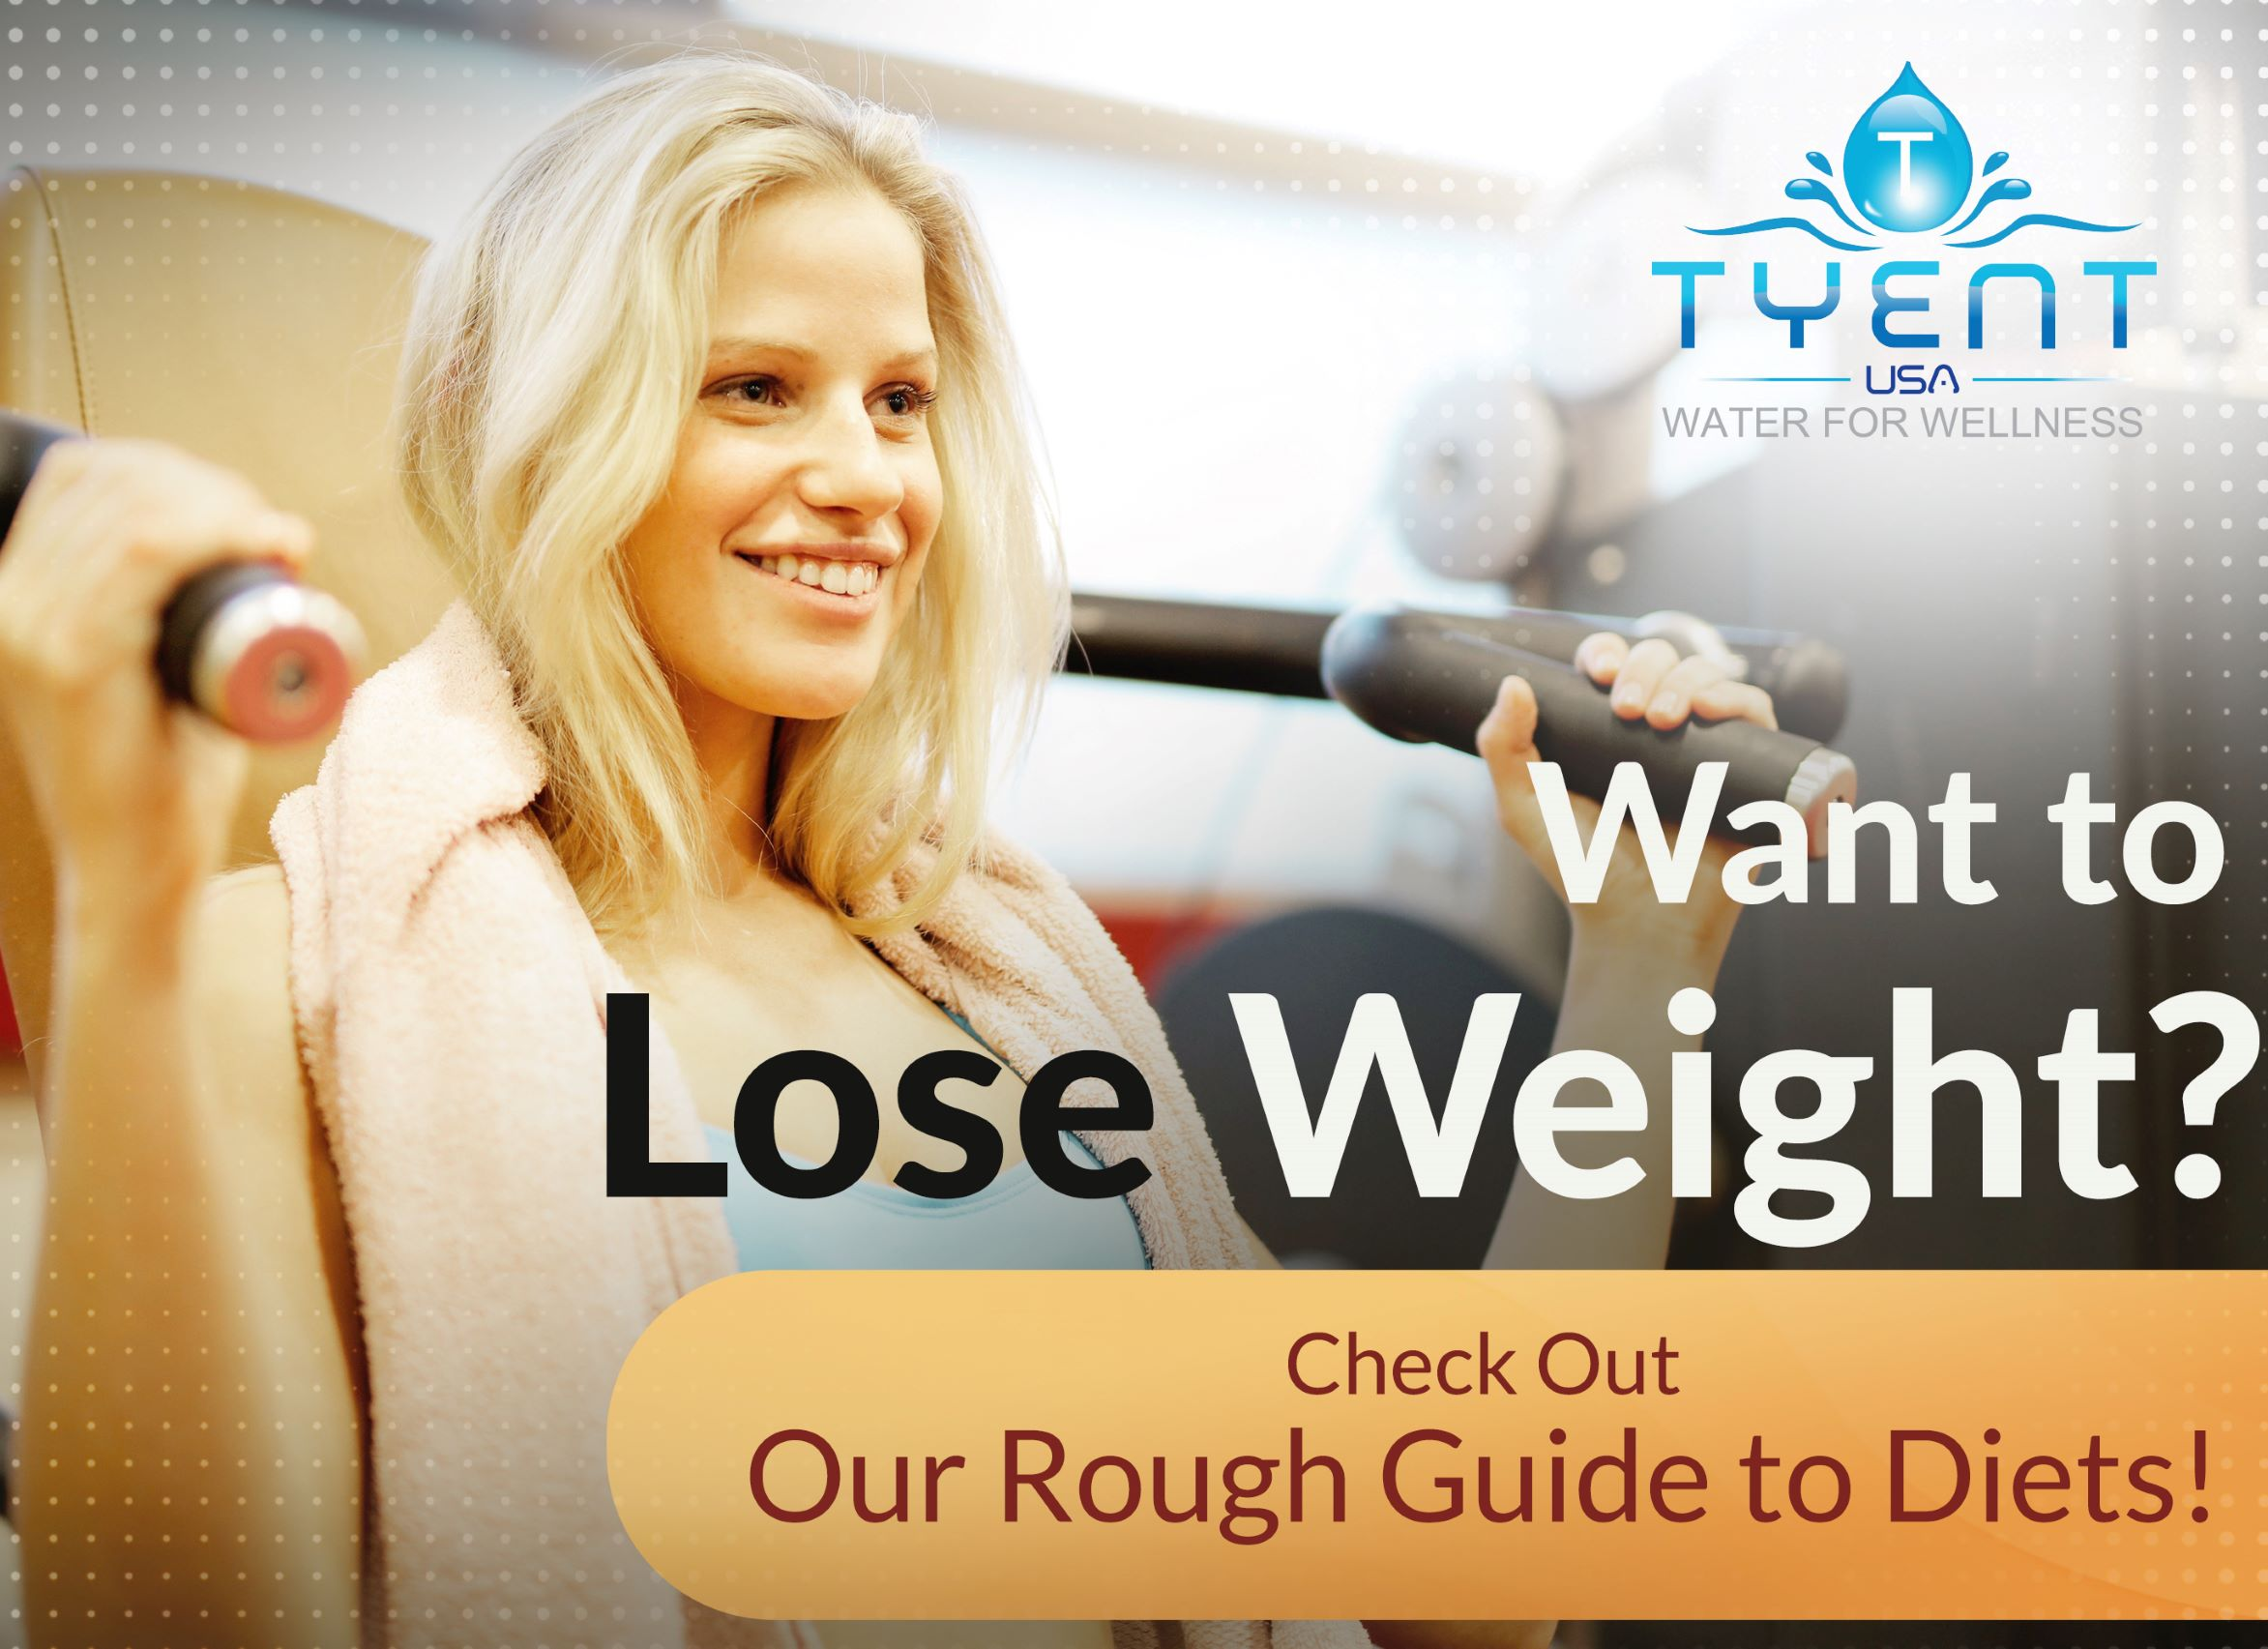 Rough Guide to Diets